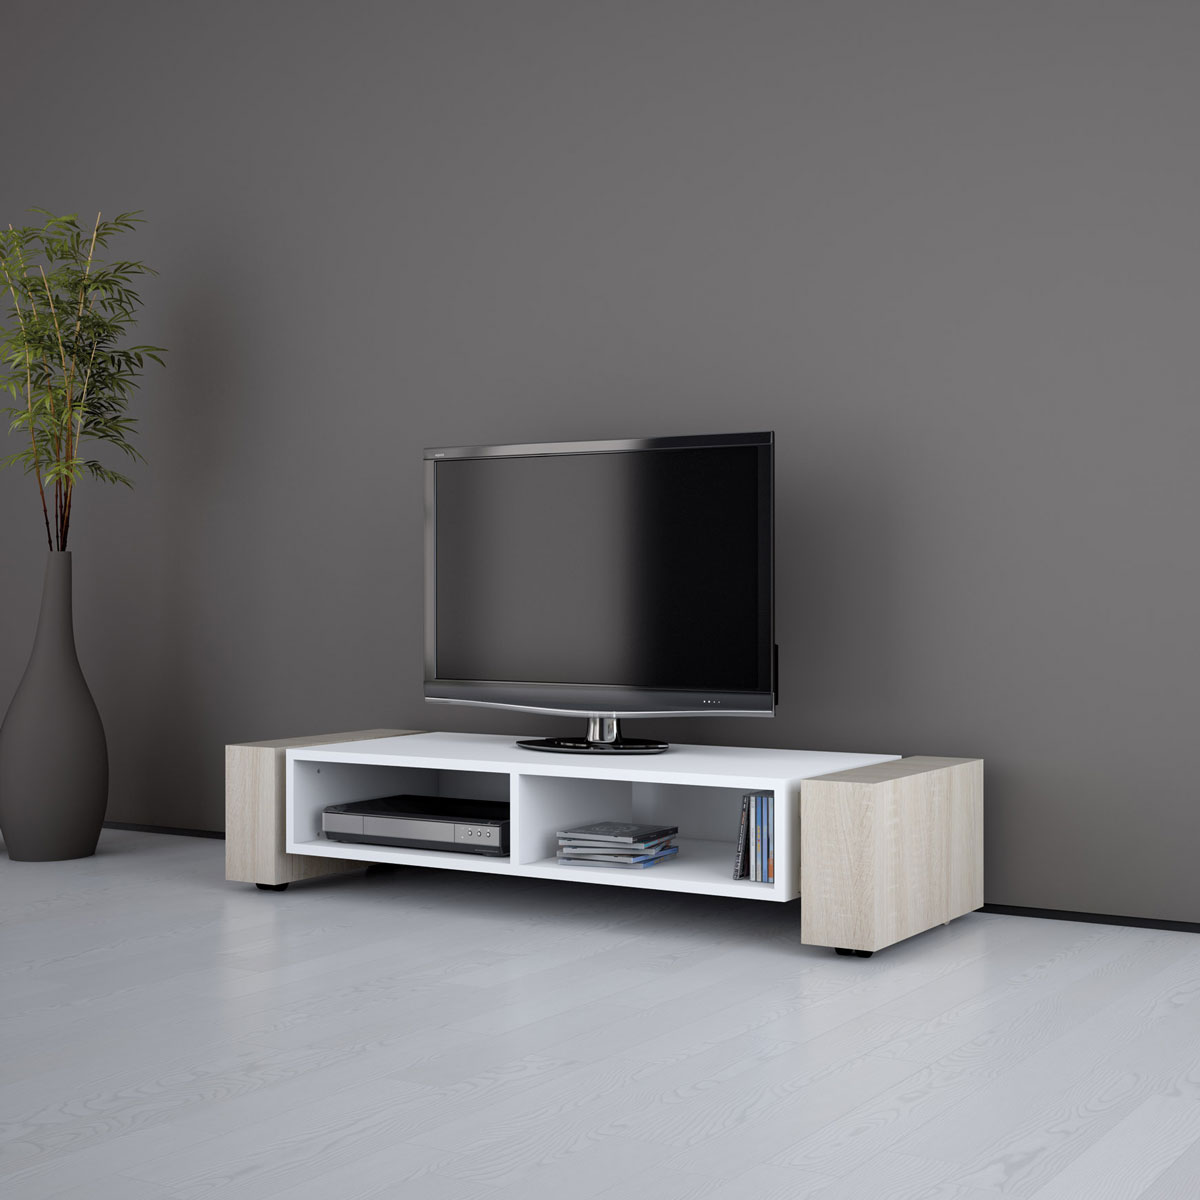 Sideboard hifi anlage repositio tv hifi sideboard for Sideboard offen